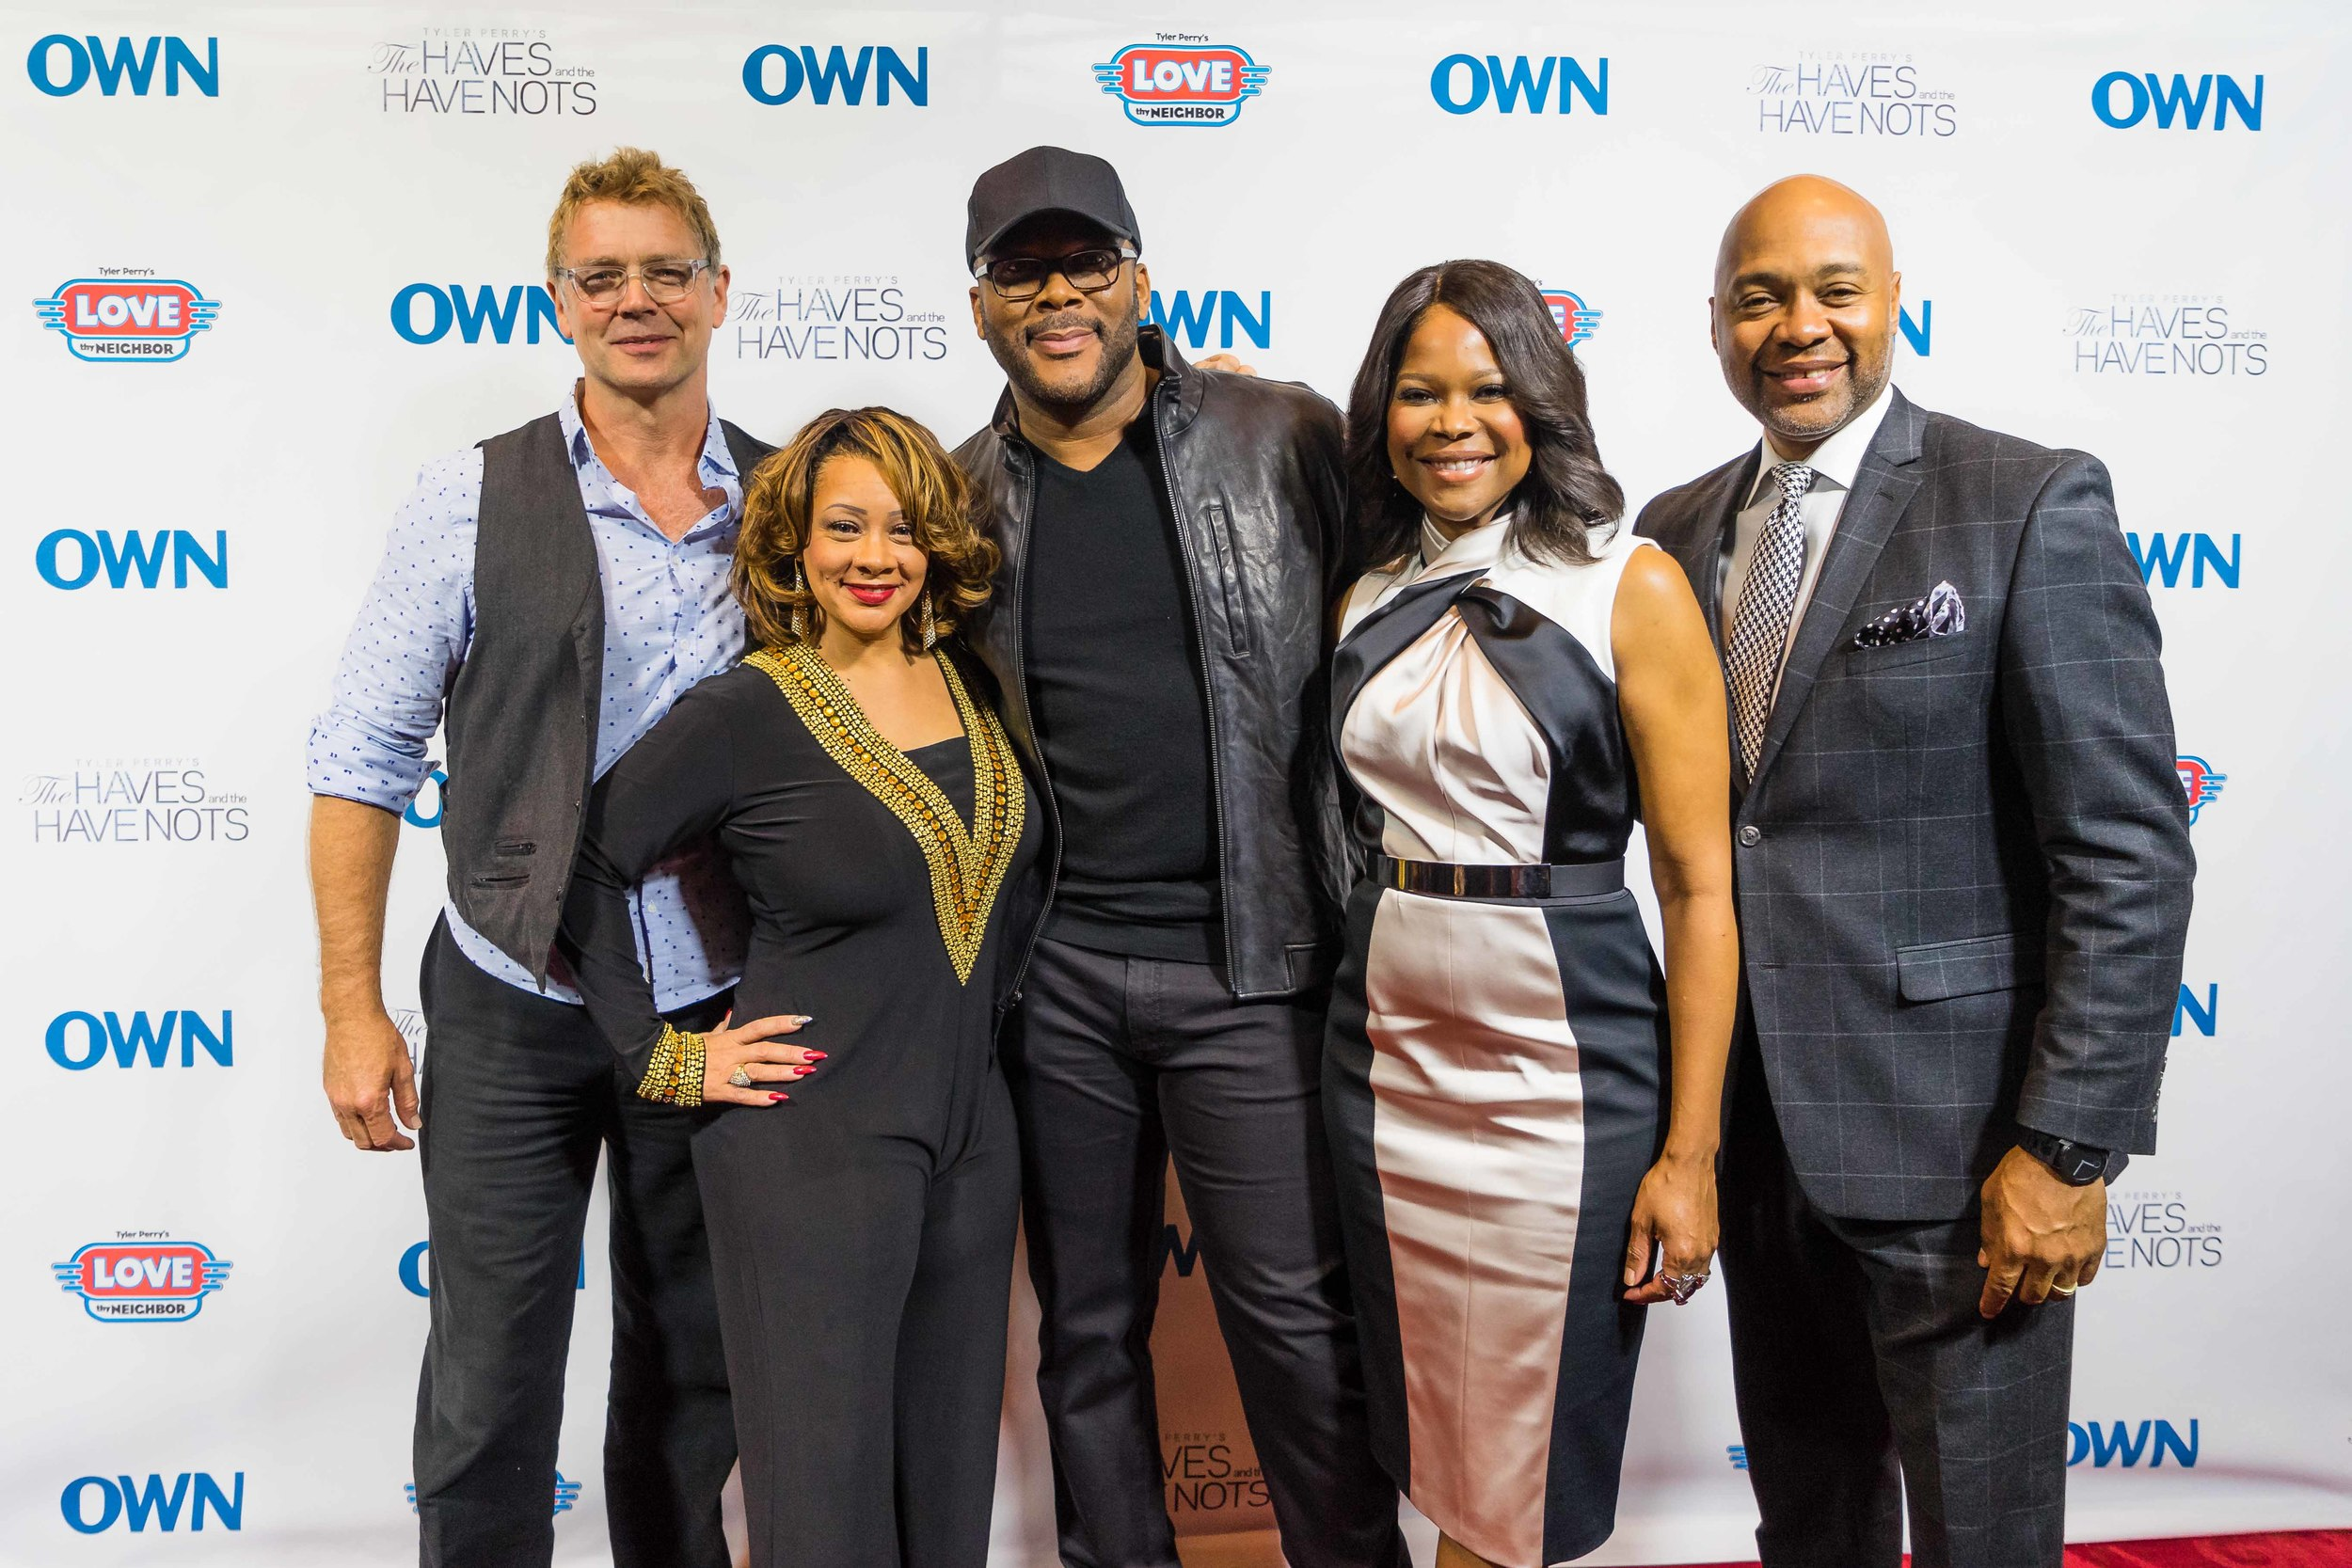 Commissioned by OWN to cover Tyler Perry's two new series in 2016